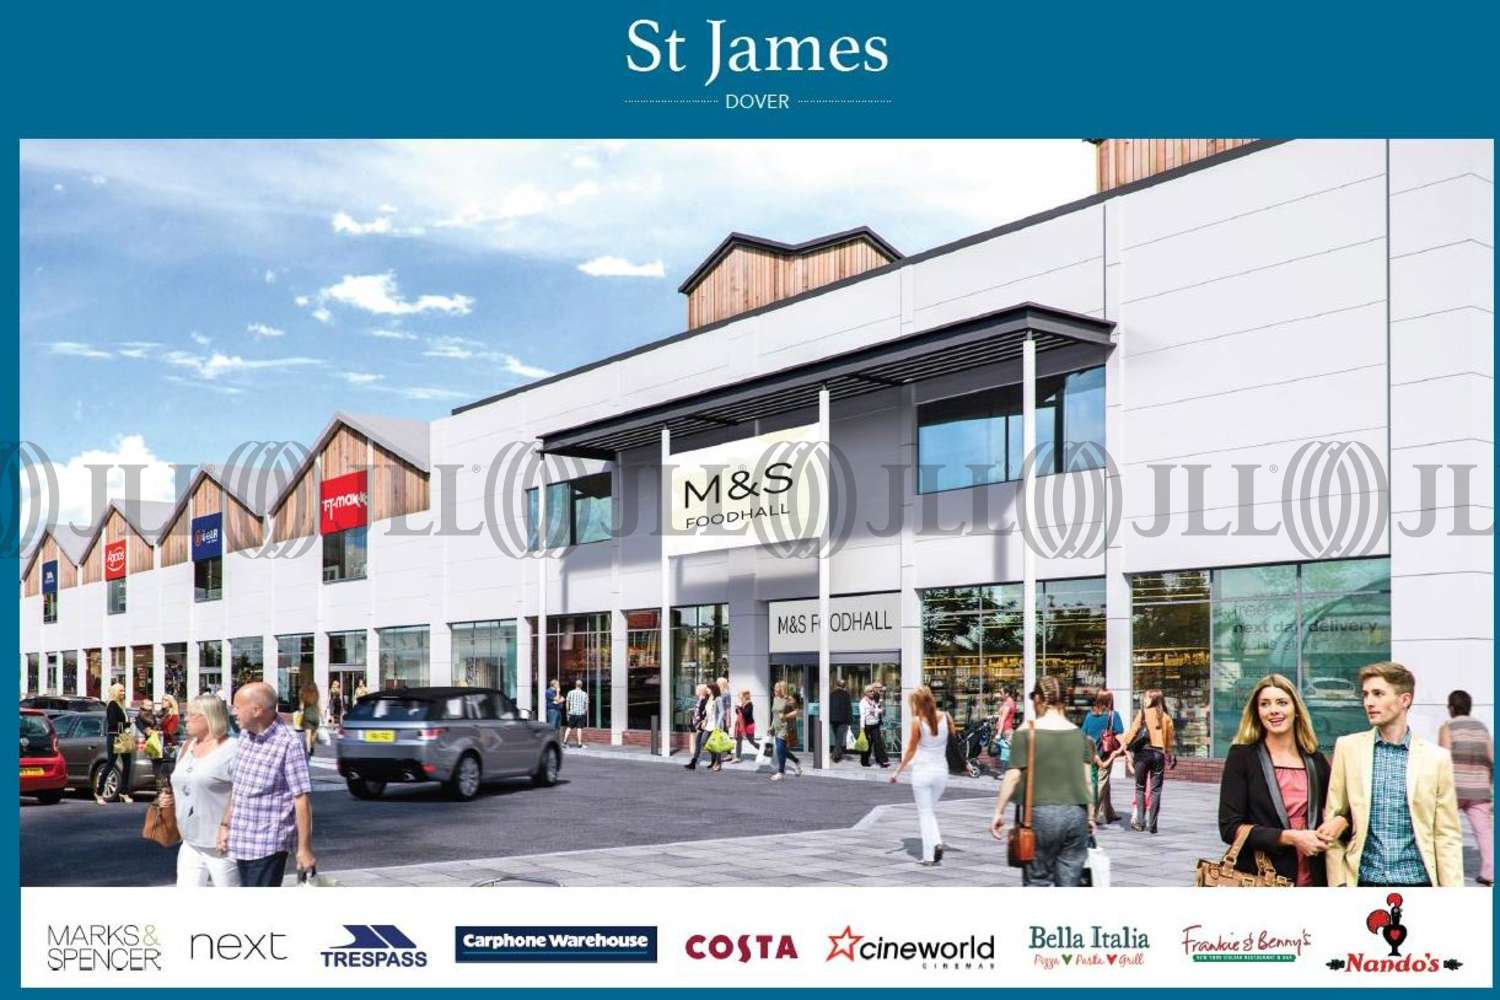 Retail out of town Dover, CT16 1SZ - St James' Development - 38901